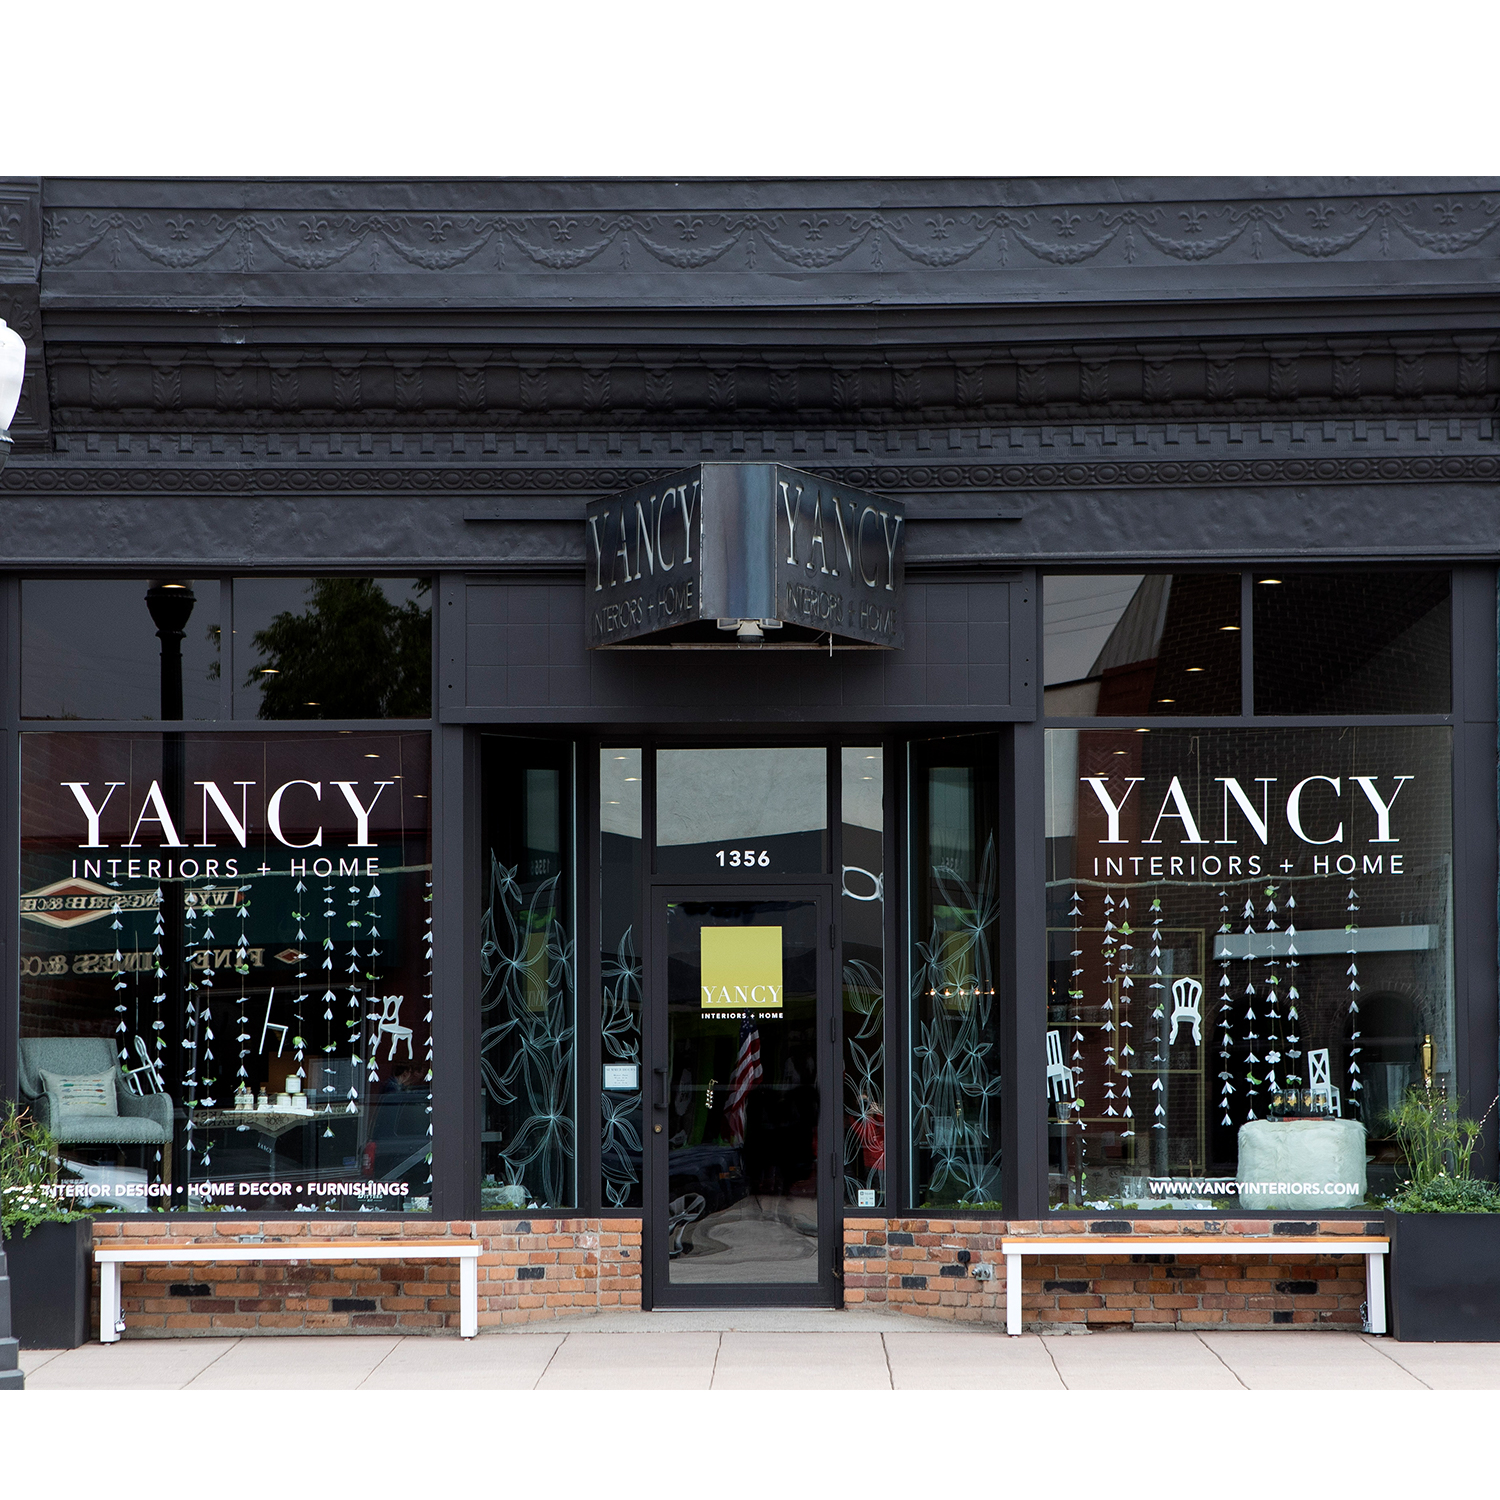 Yancy Interiors + Home